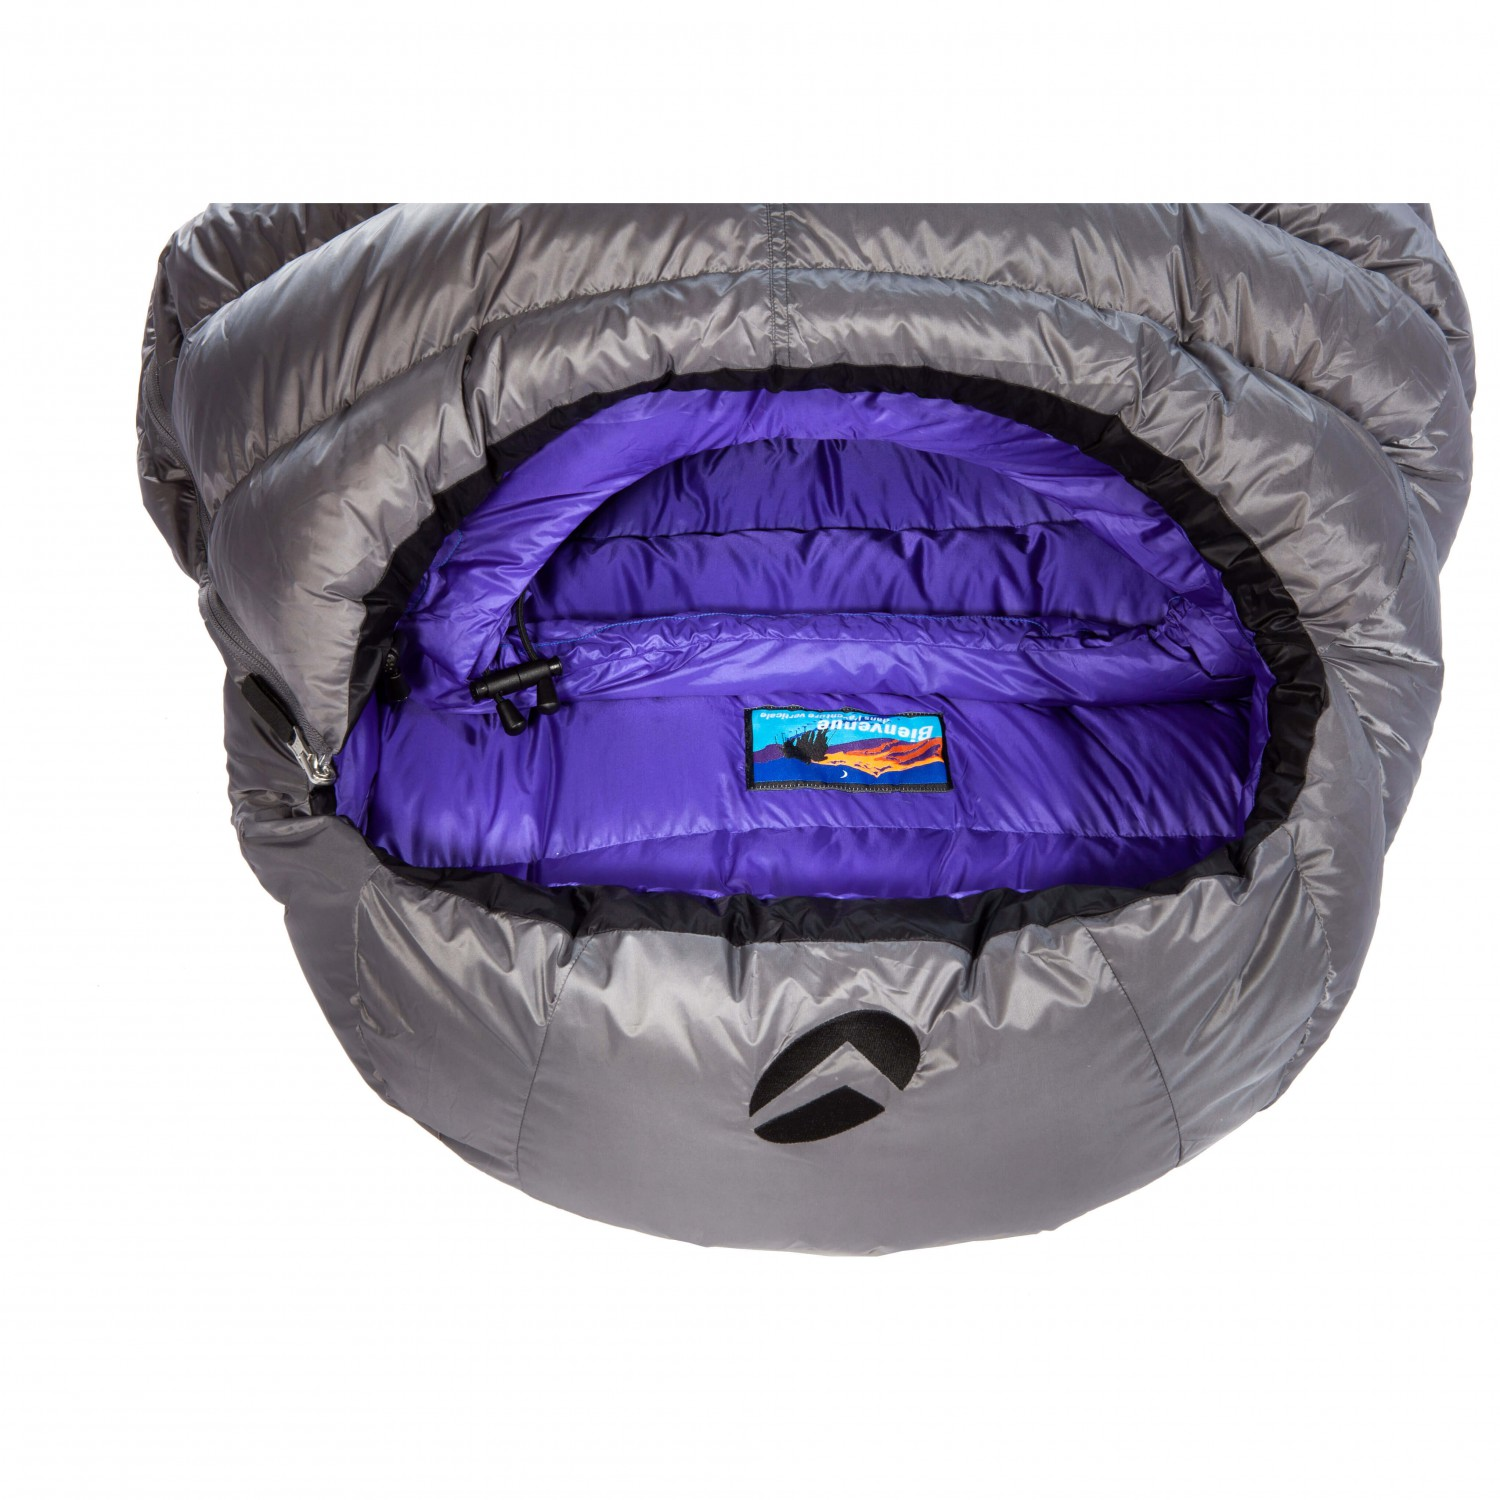 VALANDRE Sleeping Bags